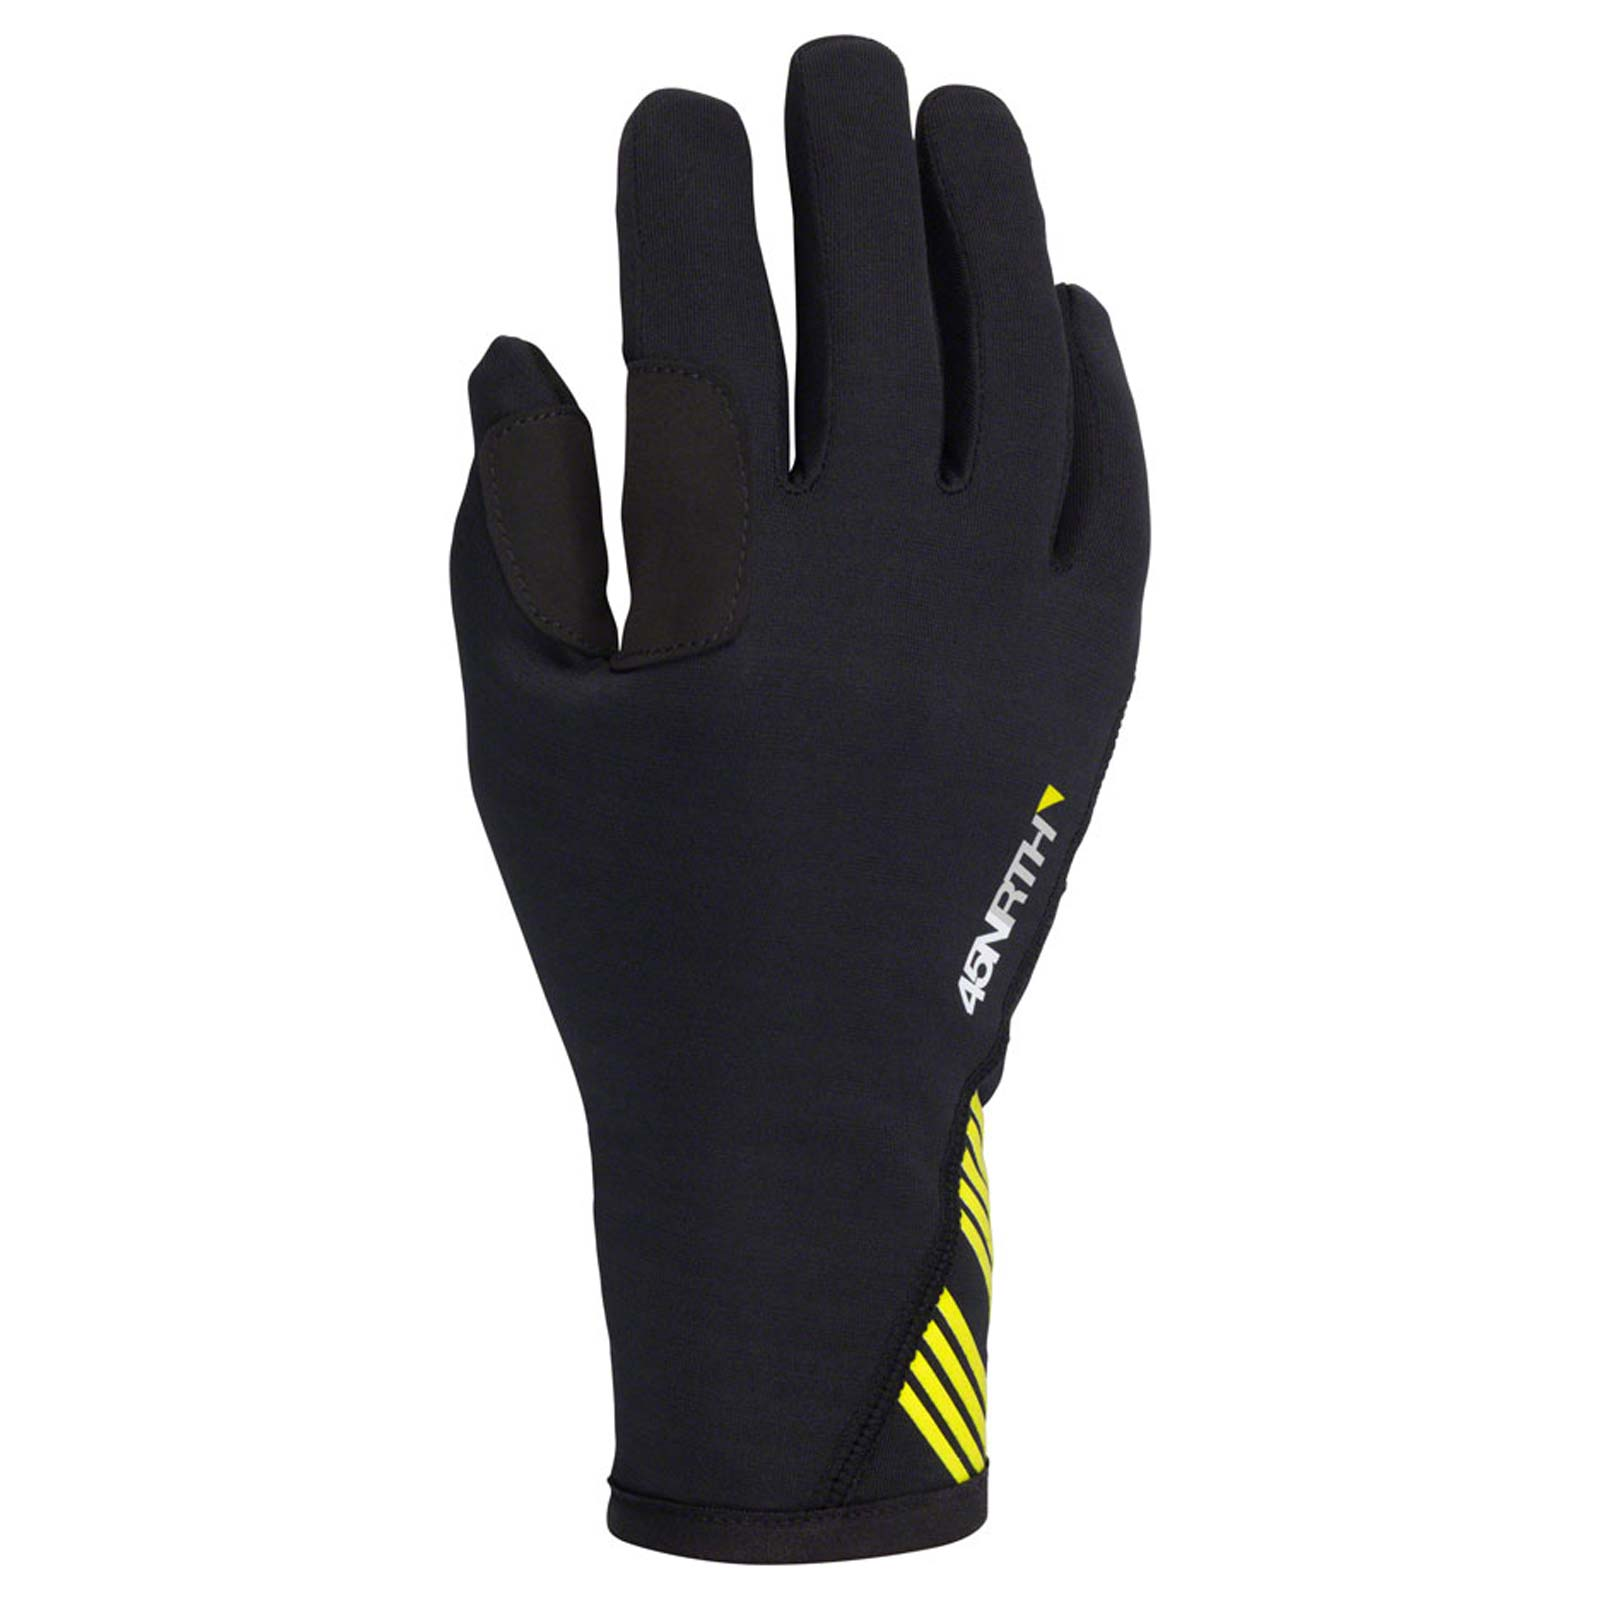 45NRTH Risor Merino Liner Cycling Gloves - Black - Full Finger